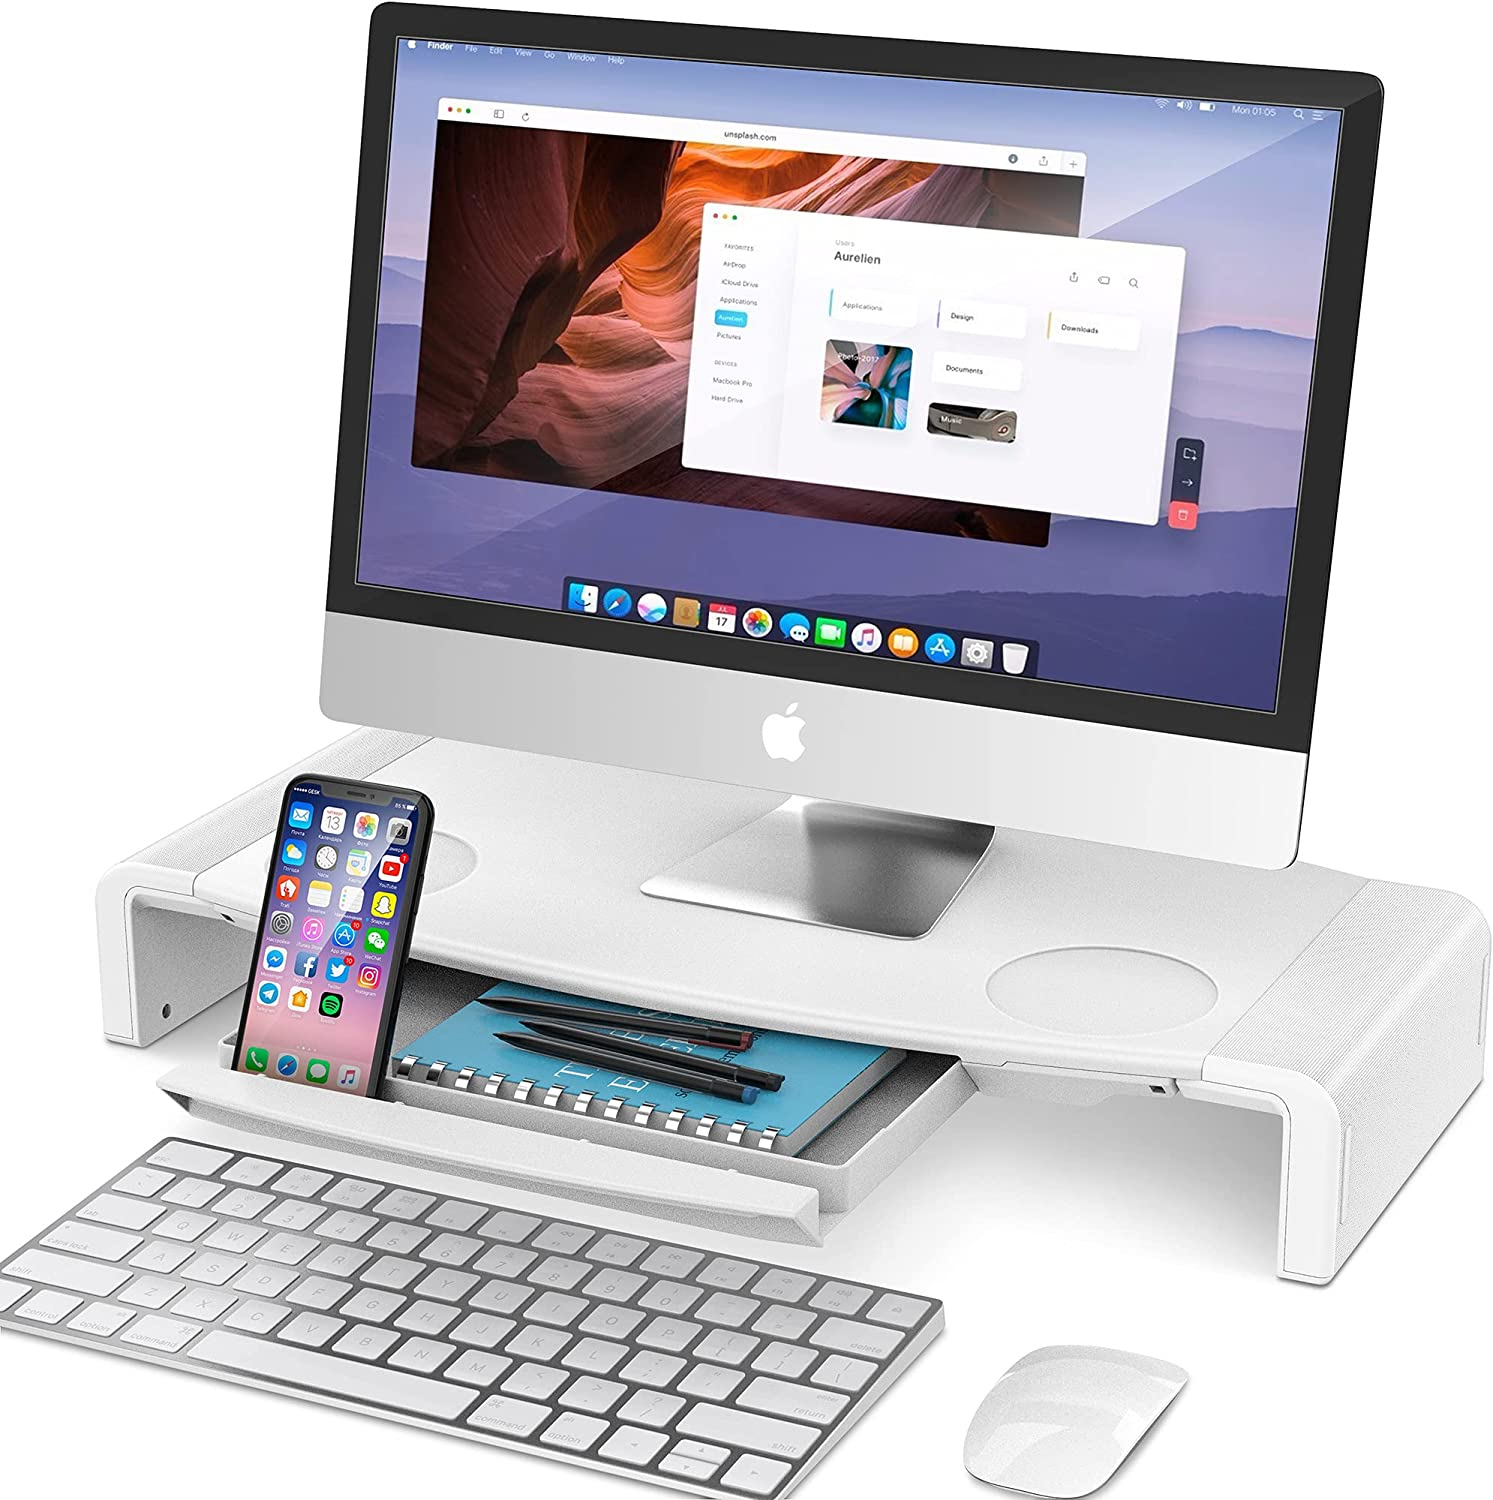 Monitor Stand Riser, AboveTEK Foldable Computer Monitor Riser, Computer Stands Desk Shelf with Storage Drawer, Phone Stand for Computer, Desktop, Laptop, Save Space (White)